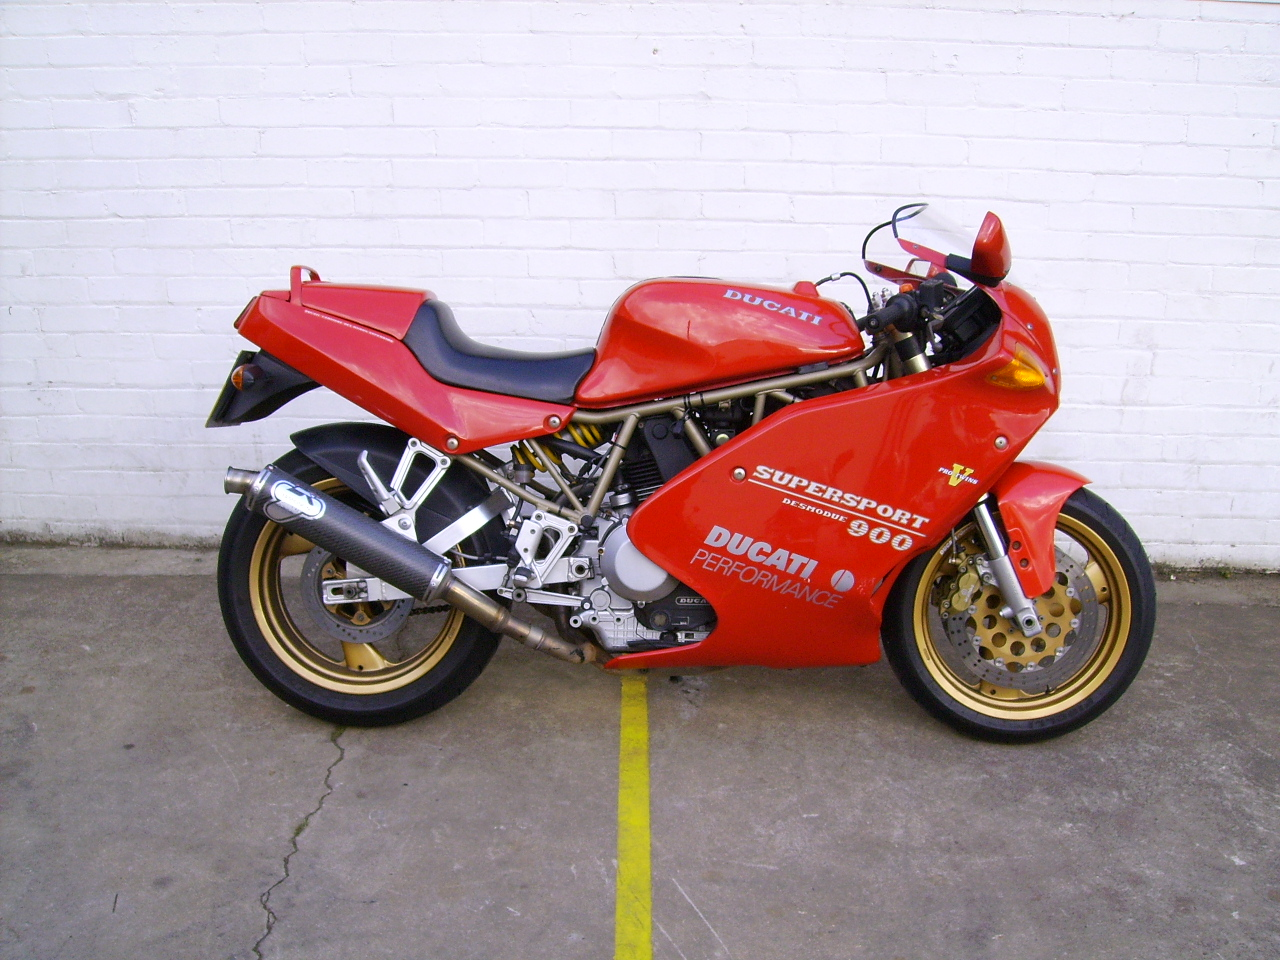 Ducati 900 SS 1997 images #79021